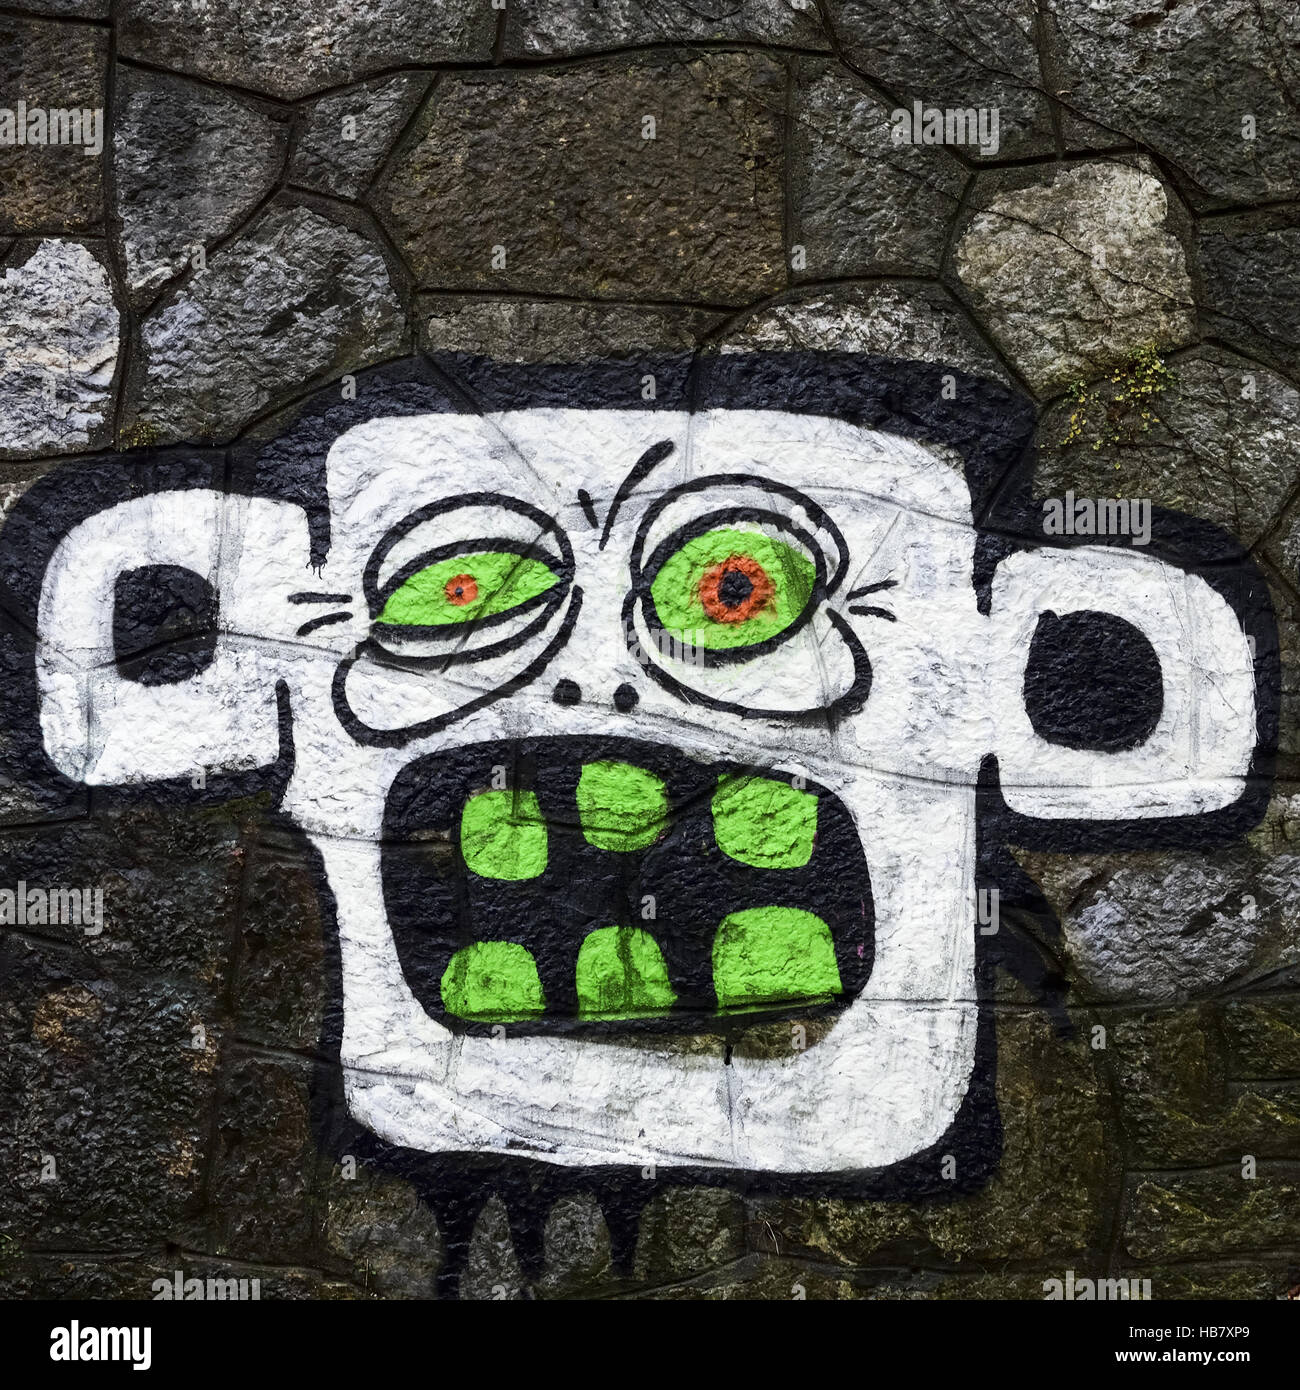 Grimace of a monster on the wall - Stock Image